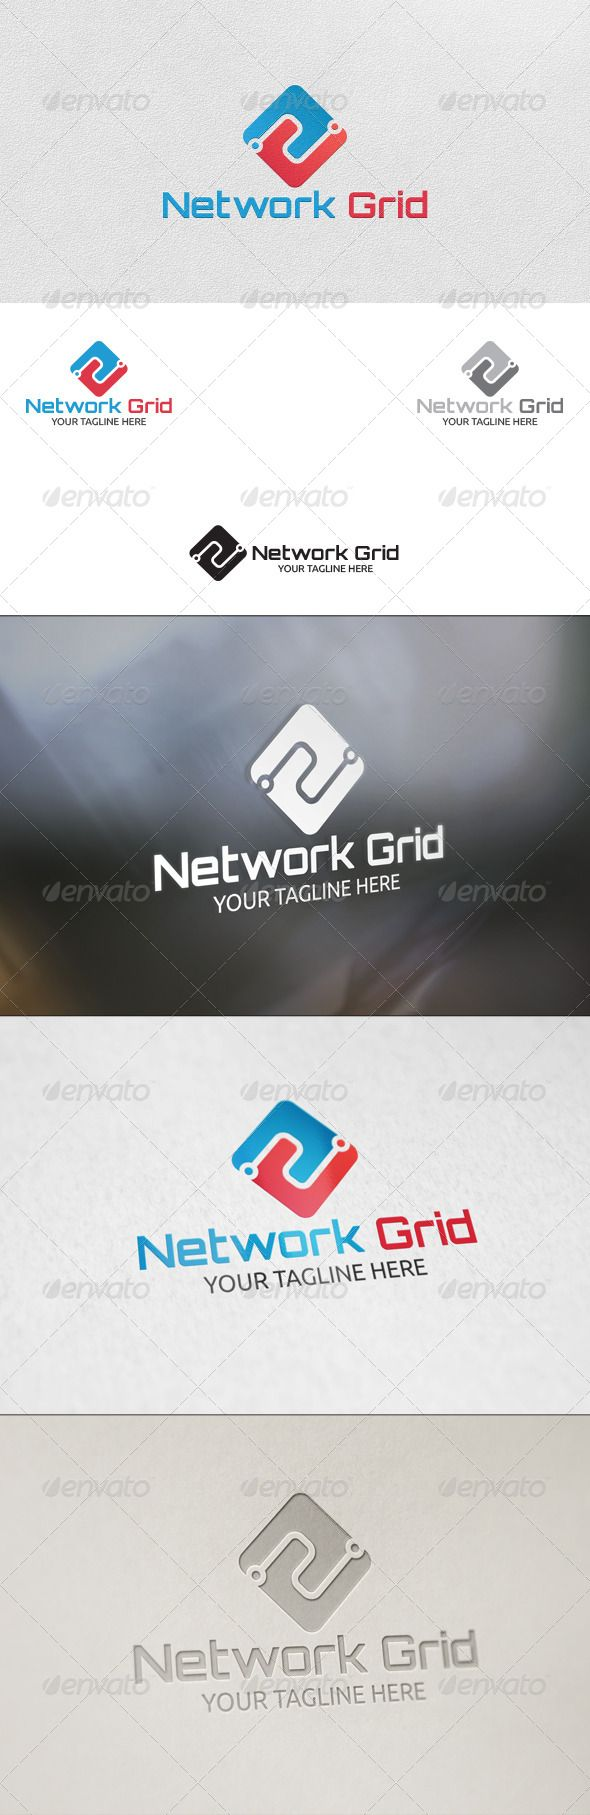 Network Grid  - Logo Design Template Vector #logotype Download it here: http://graphicriver.net/item/network-grid-logo-template/5798159?s_rank=1494?ref=nesto